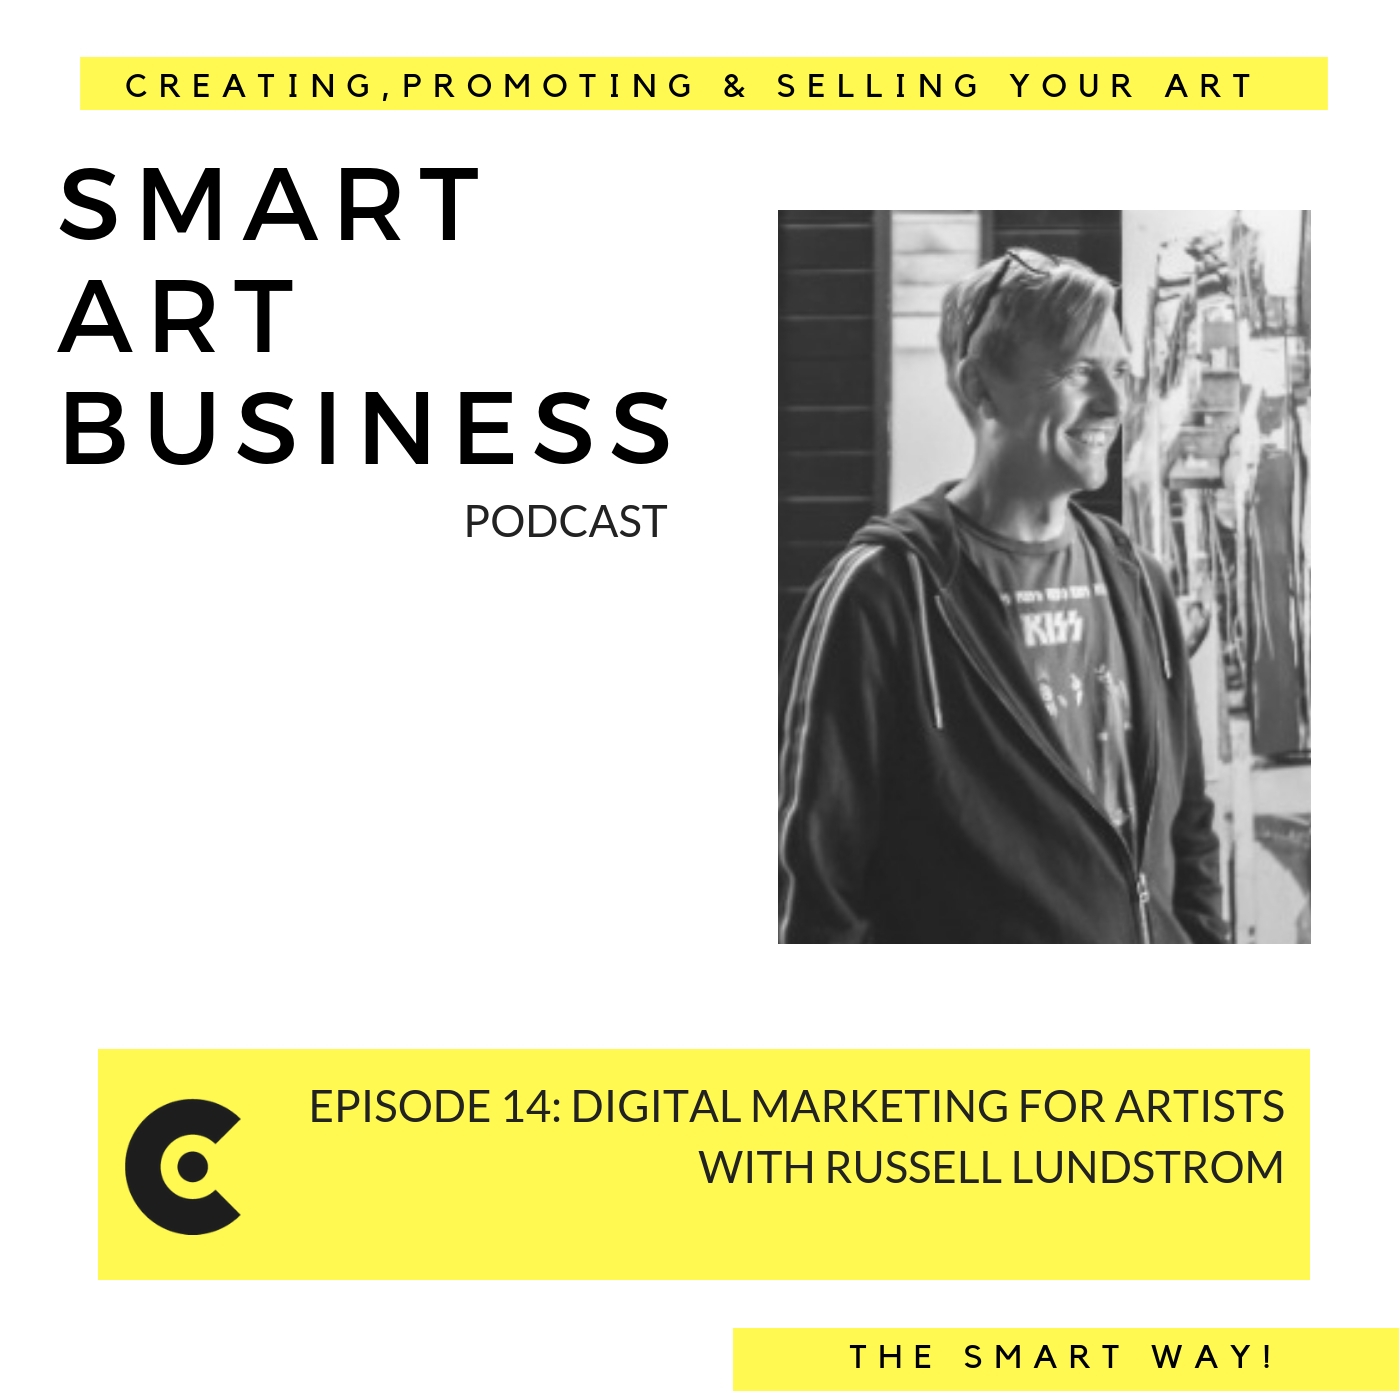 Digital Marketing for Artists with Russell Lundstrom